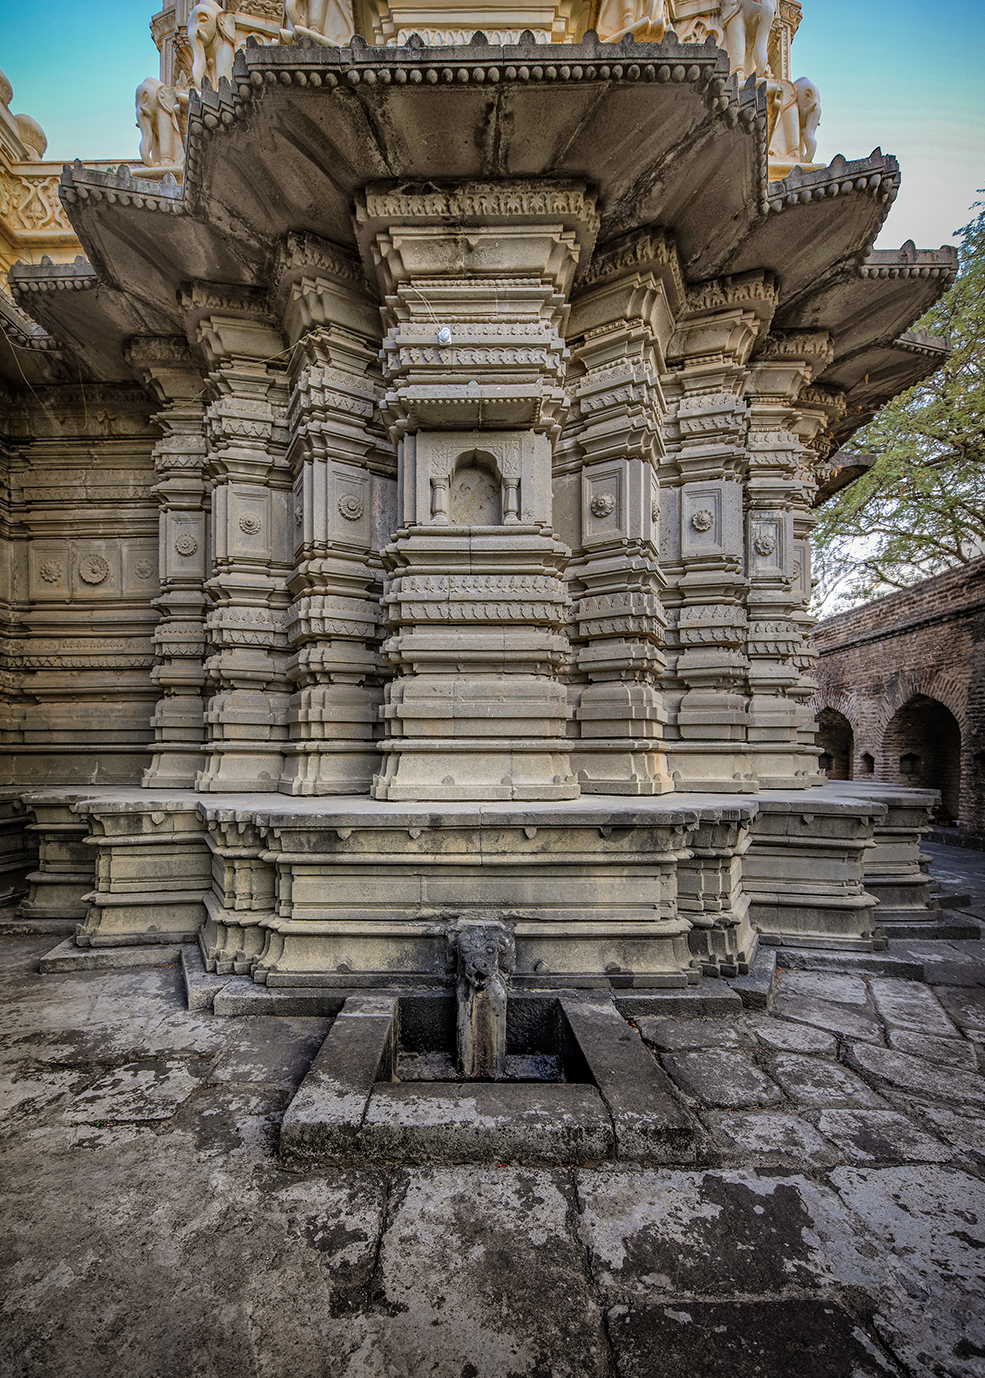 Changa Vateshwar Temple is a Shiva temple located  at the foothills of Purandar fort at Narayanpur near Saswad on the outskirts of Pune.